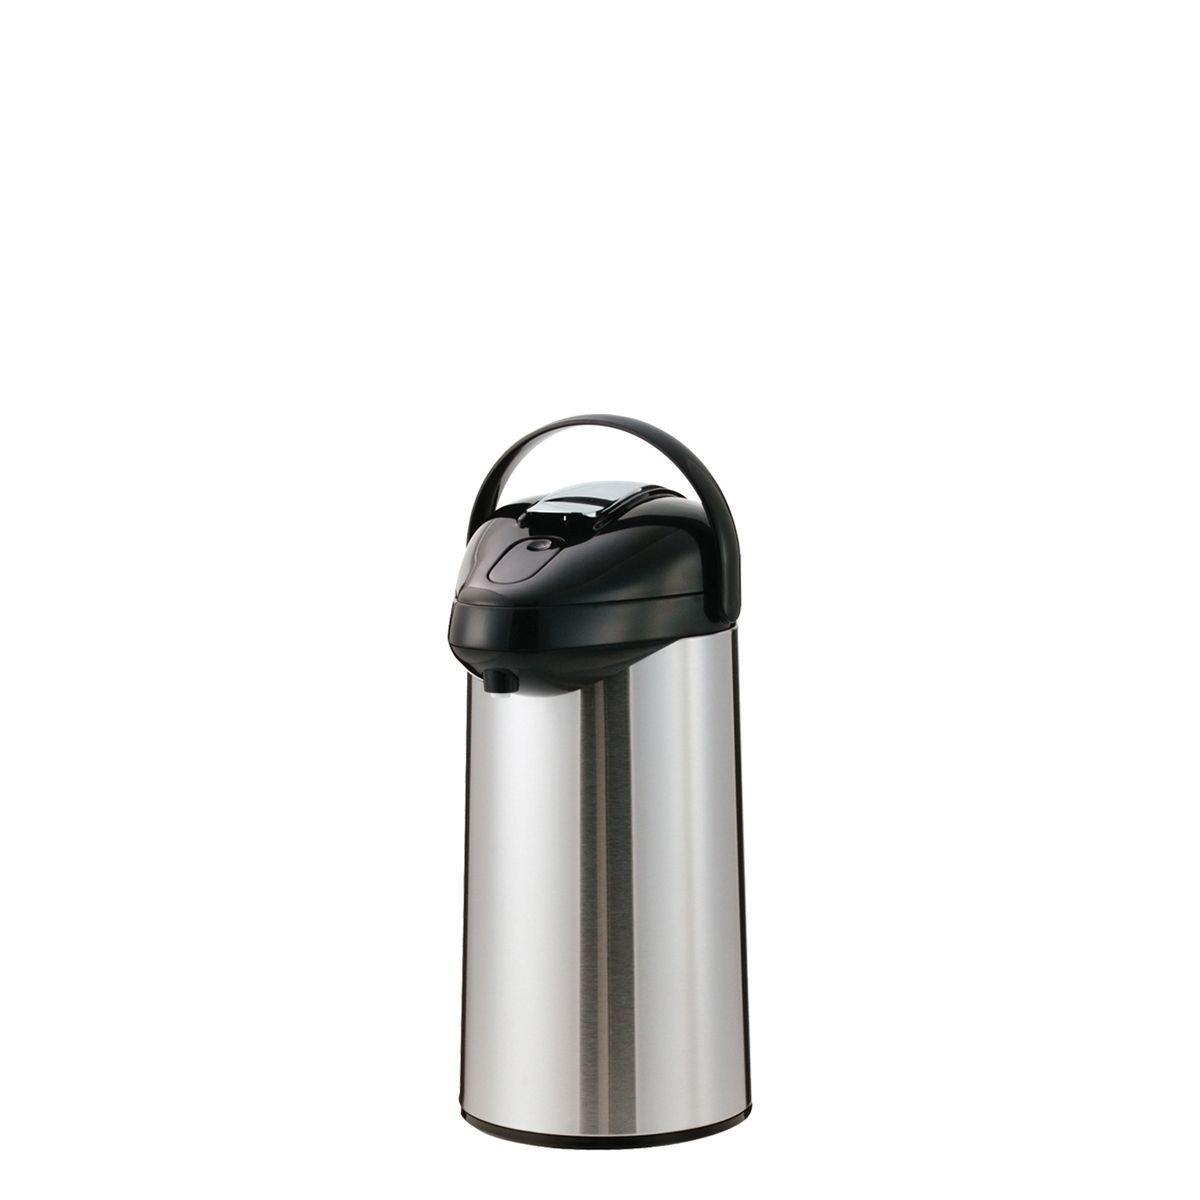 Service Ideas GLAL250 SteelVac Premium Glass-Lined Airpot with Lever Lid, 2.5 Liter